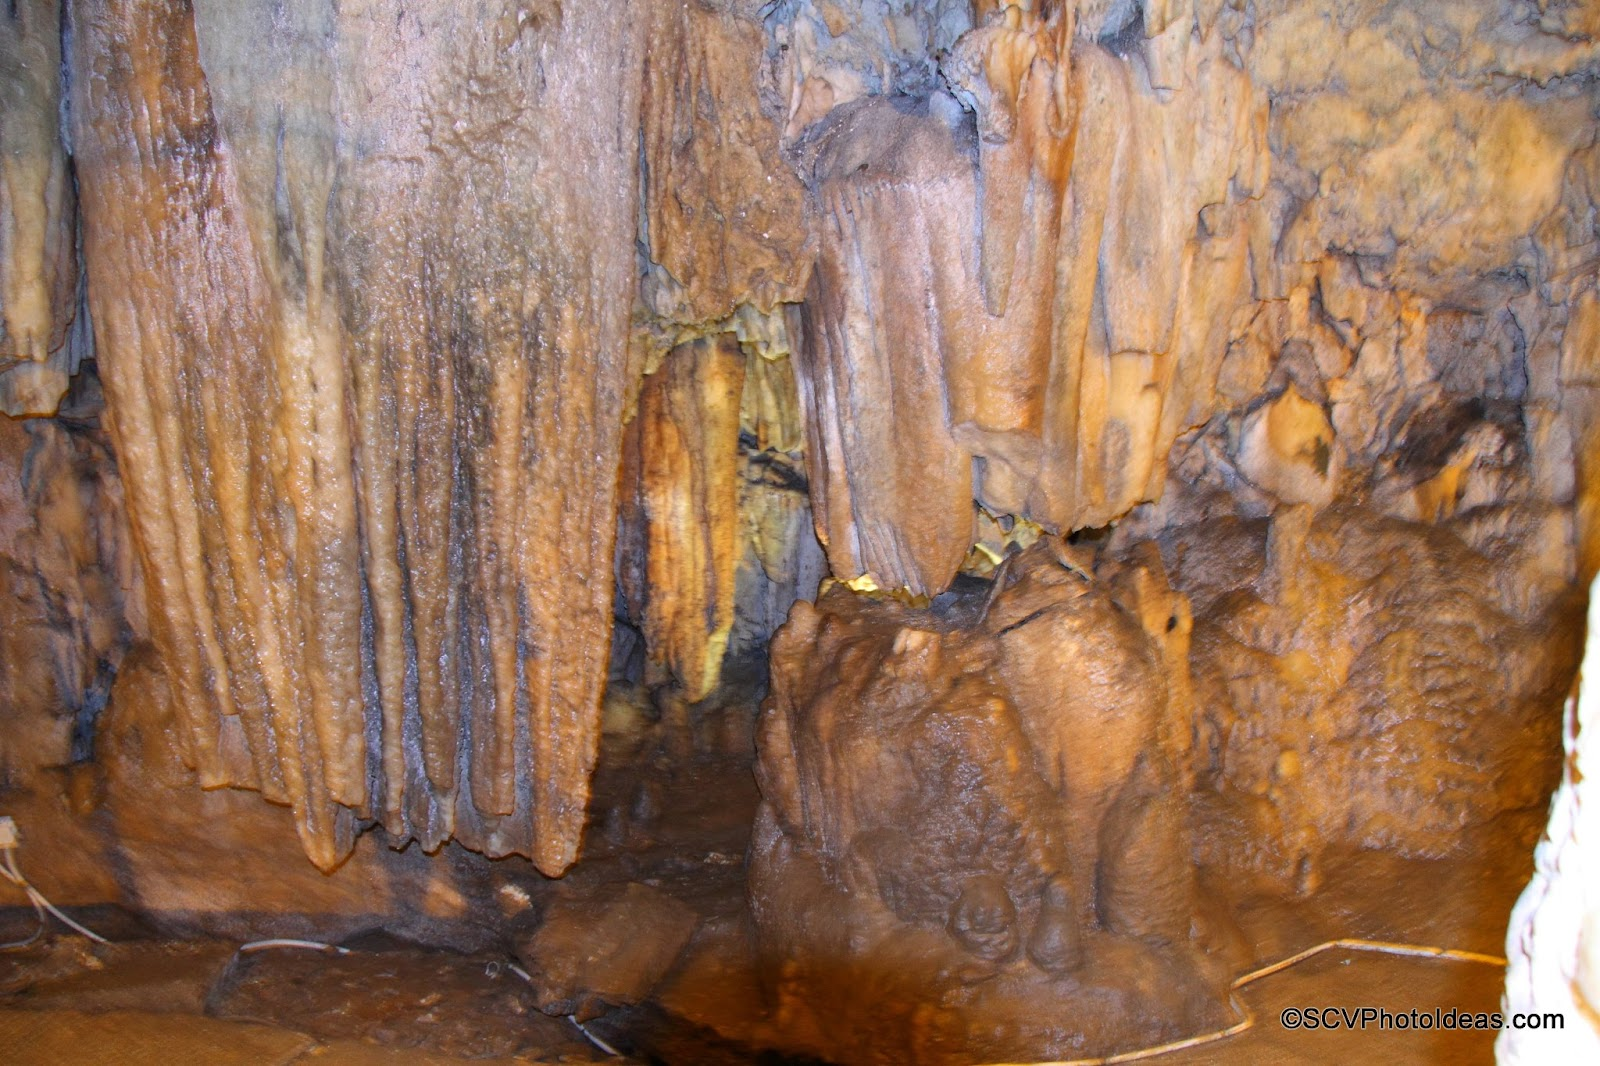 Drogarati Cave massive stalactite formations with flash